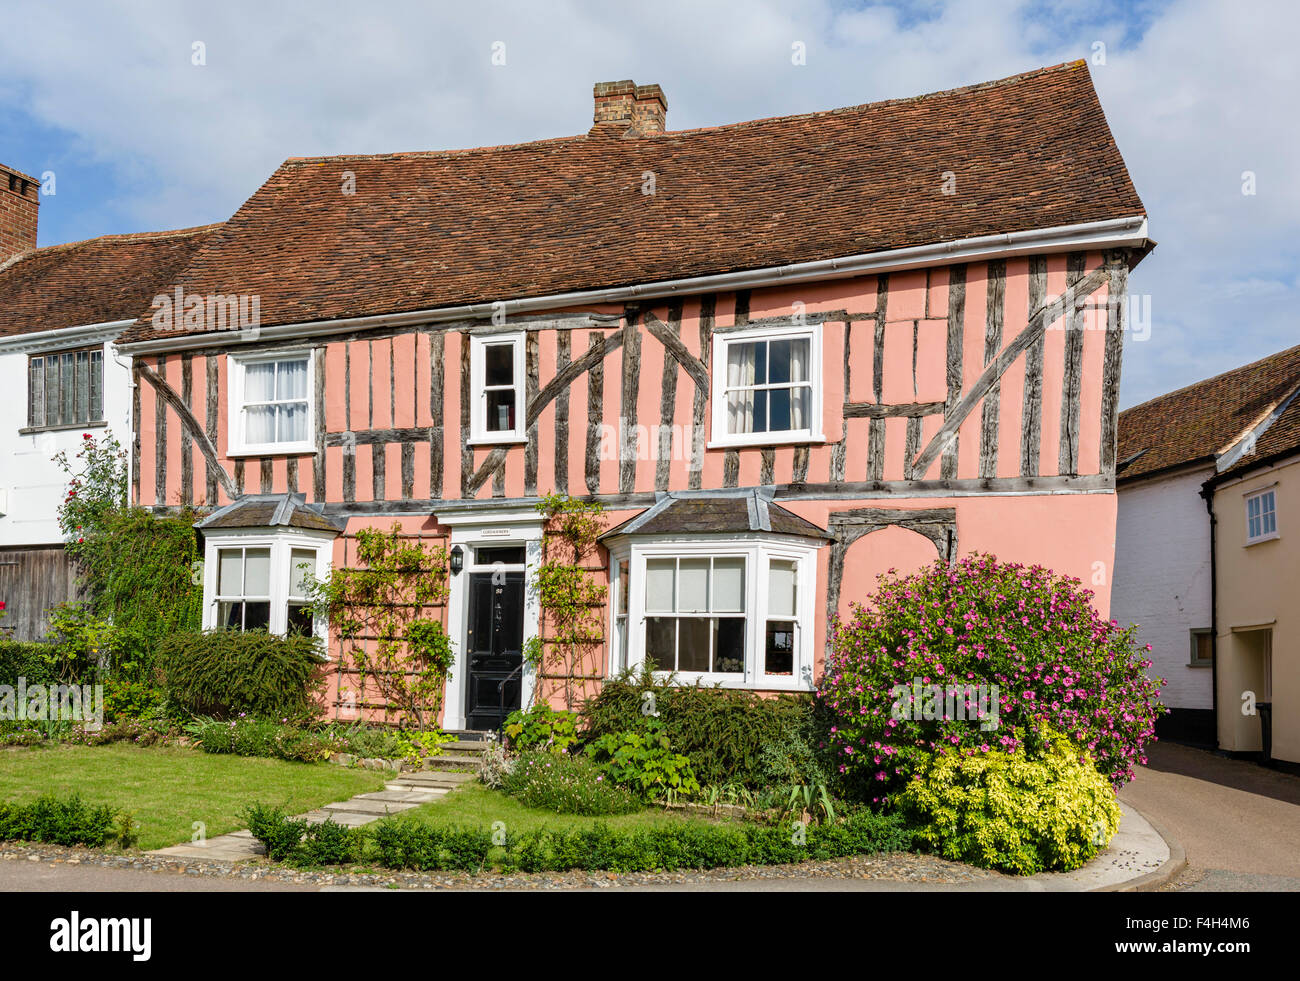 A colourful old crooked house in the village of Lavenham, Suffolk, England, UK - Stock Image